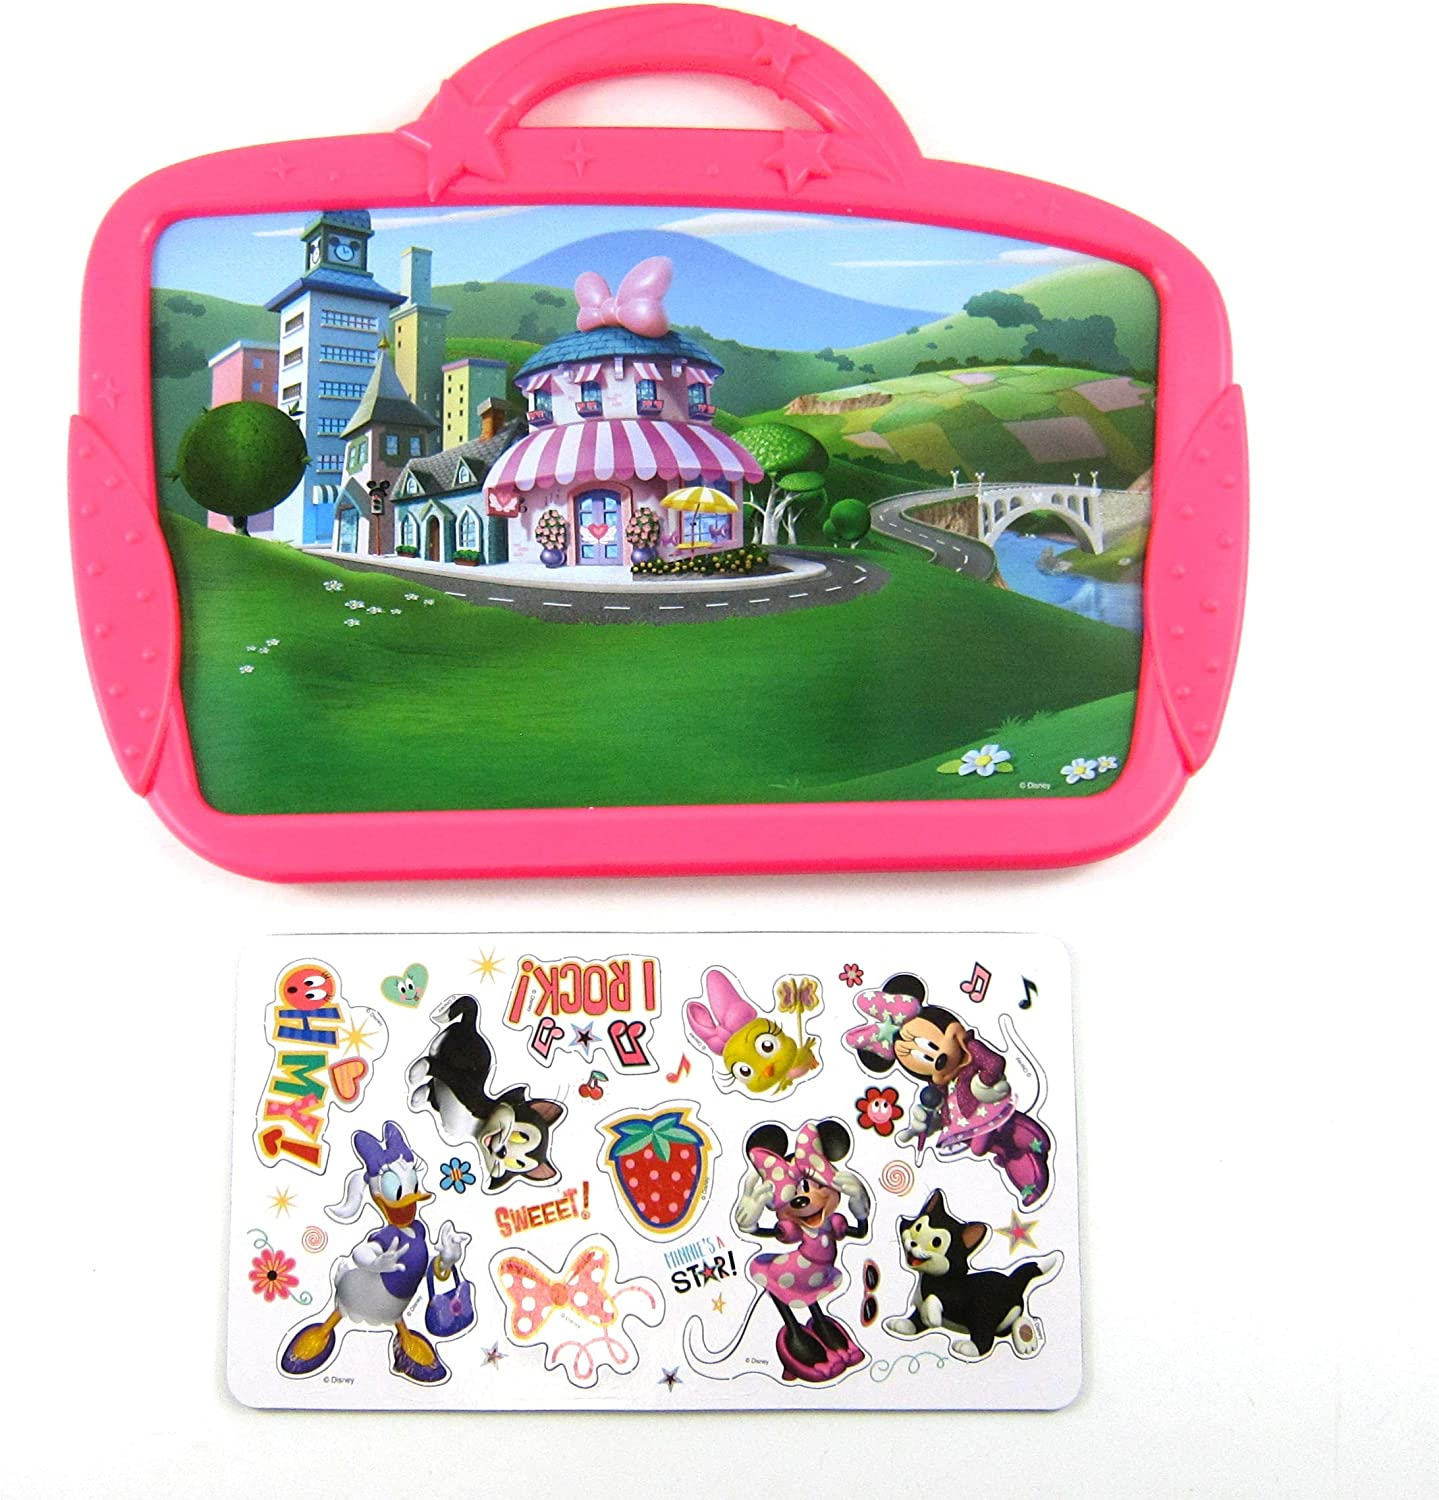 Disney Junior Minnie Mouse Play /& Go Magnetic Storyboard Play Toy Set